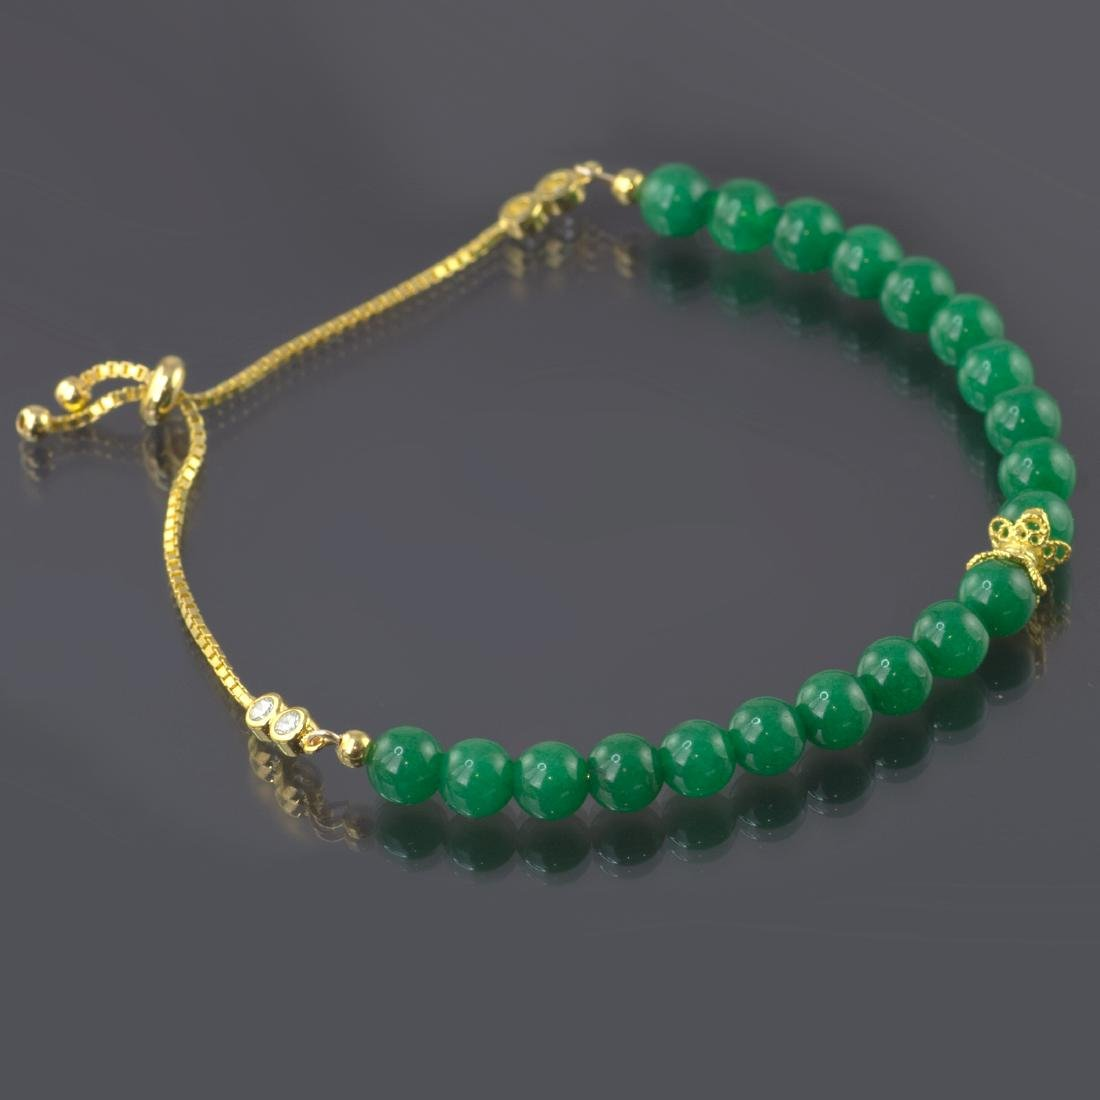 Adjustable Imperial Green Jade Bracelet - 3